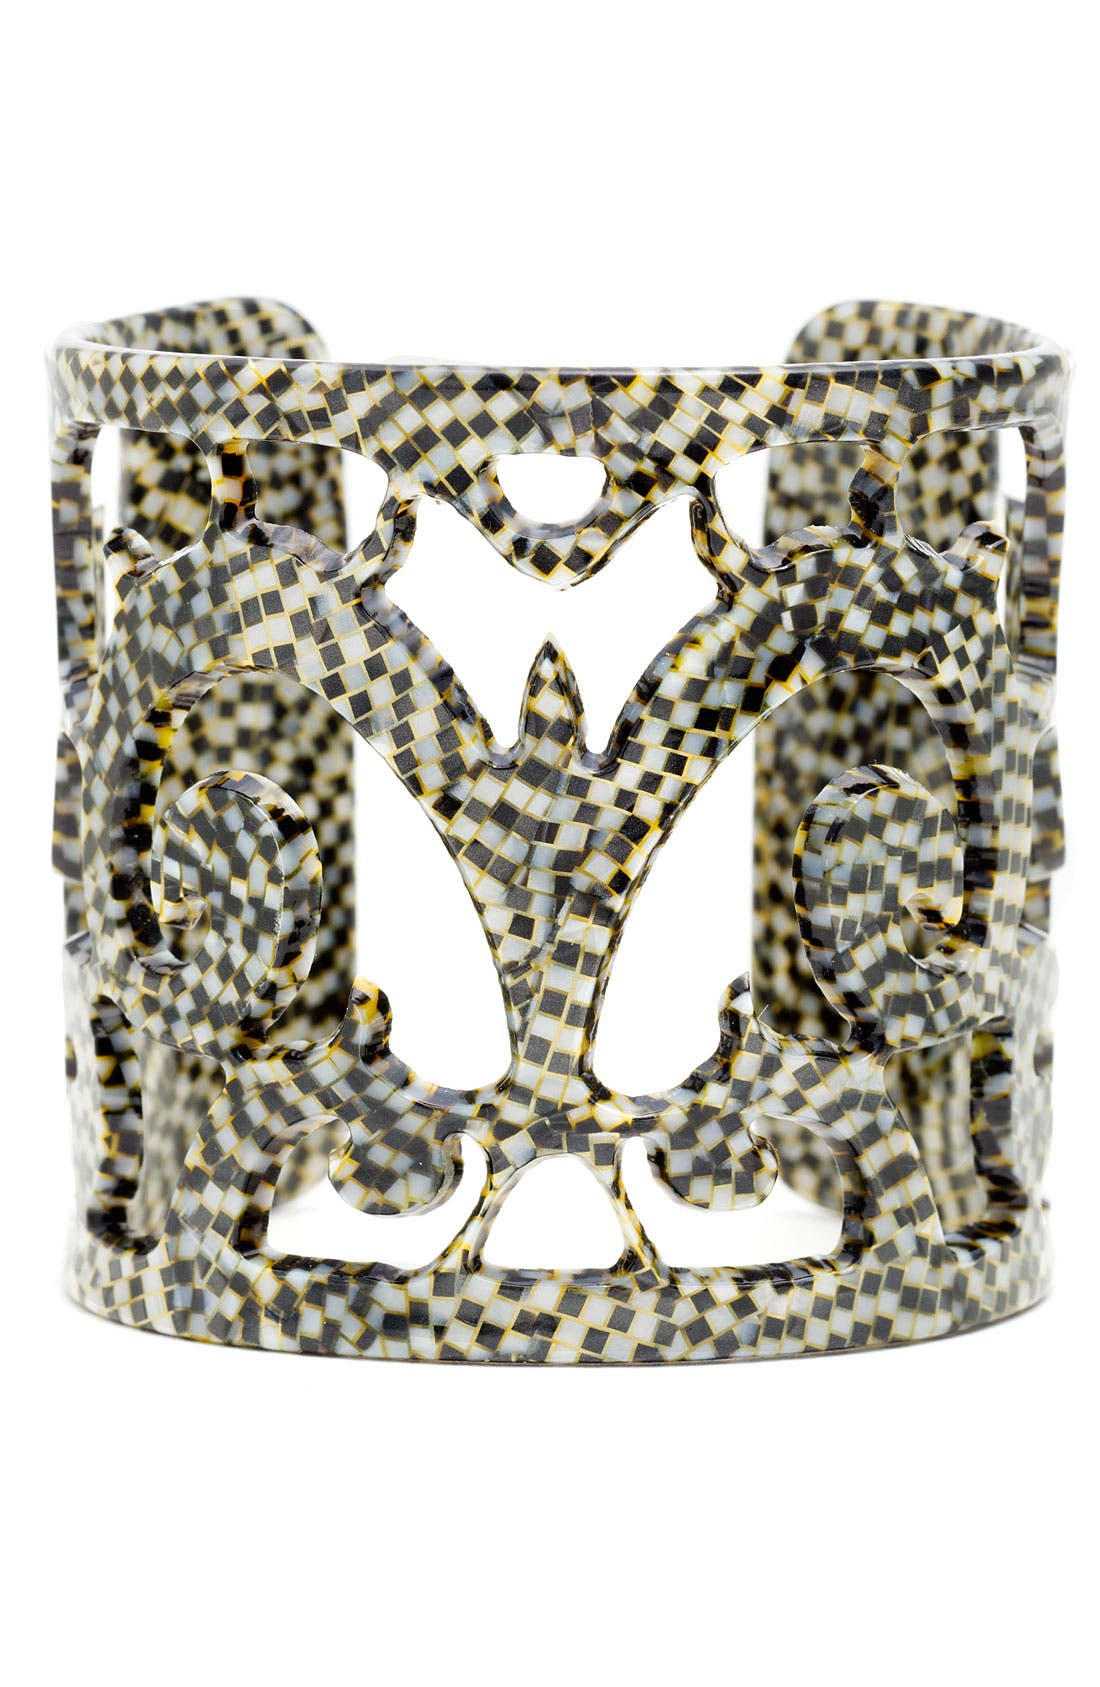 Main Image - Moschitto Designs Filigree Cuff